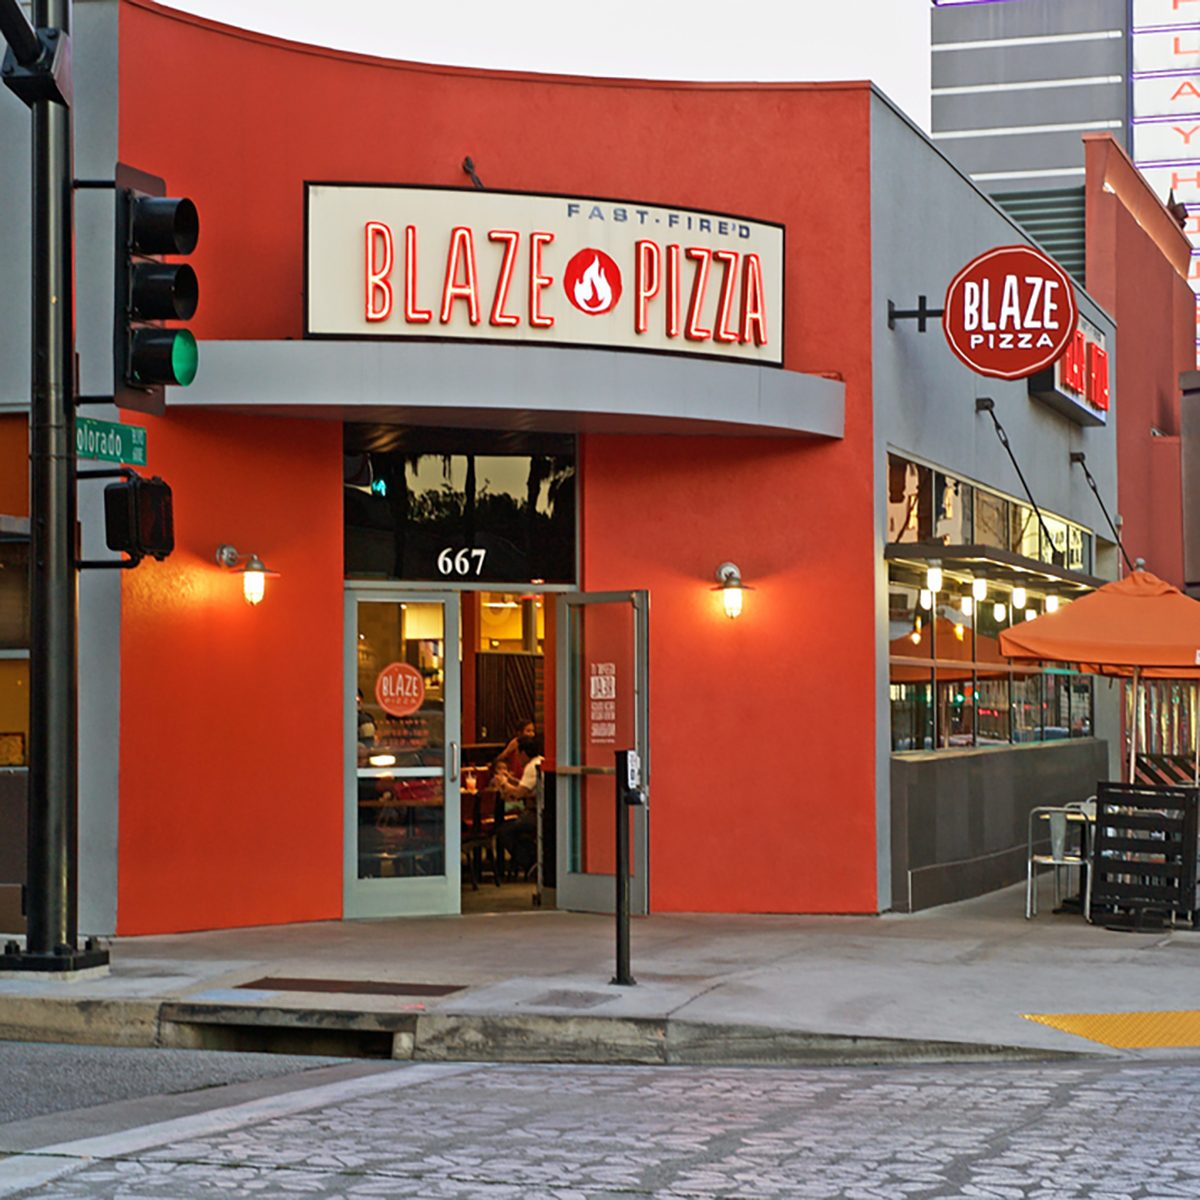 Building facade of the popular Blaze Pizza restaurant. Image was captured after sunset in Pasadena, California USA